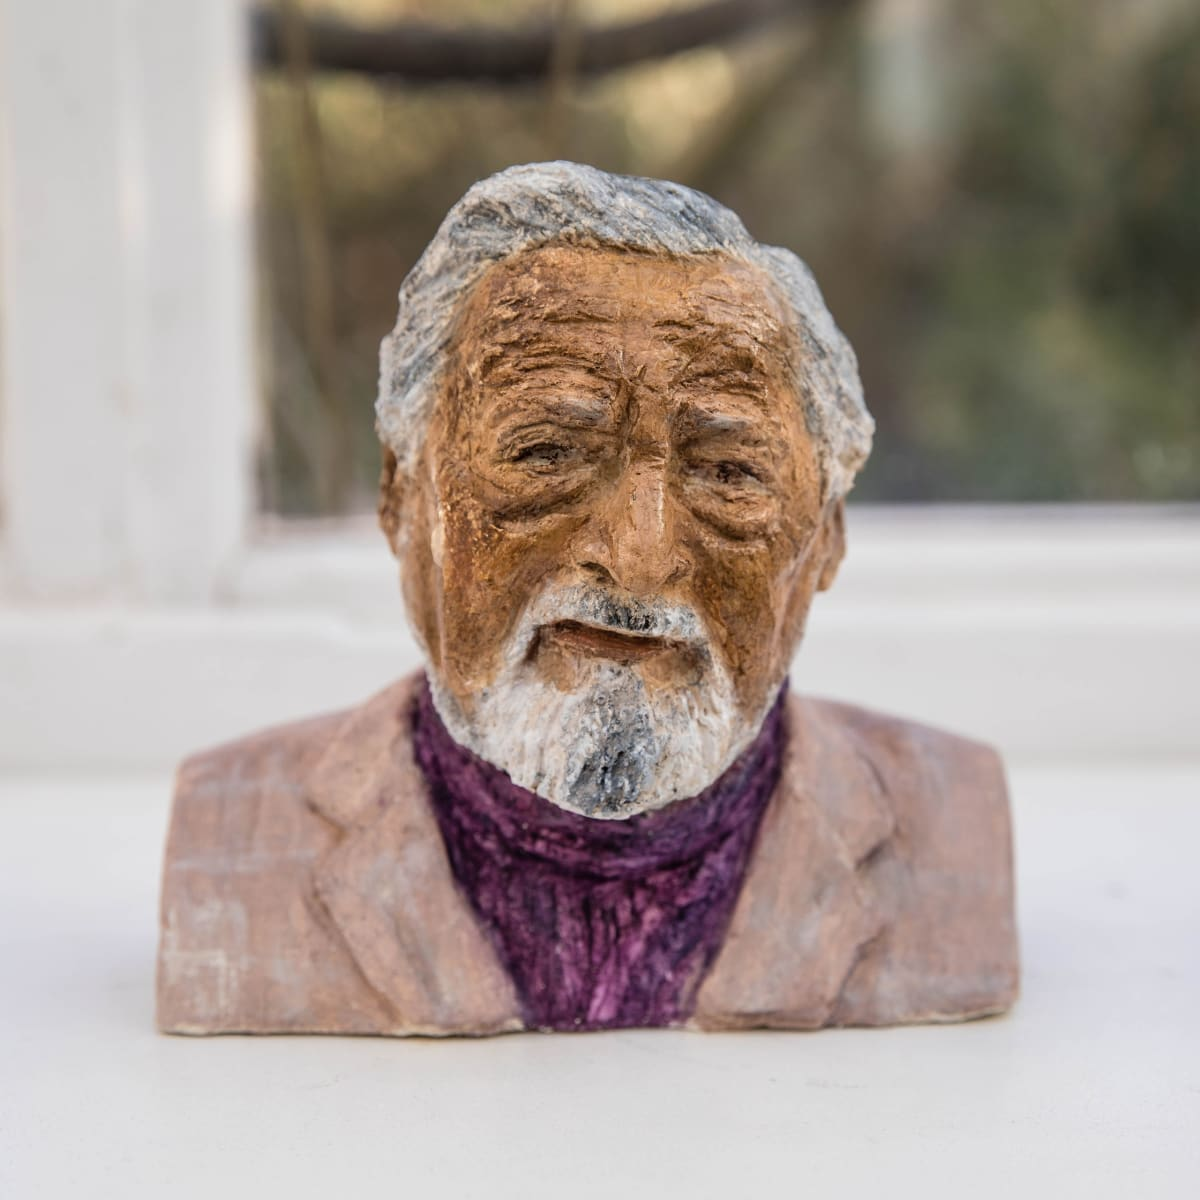 Nicole Farhi V. S. Naipaul ciment fondu and acrylic; hand-painted bronze casts available to purchase 18 x 18 x 7 cm edition of 7 + 3 APs